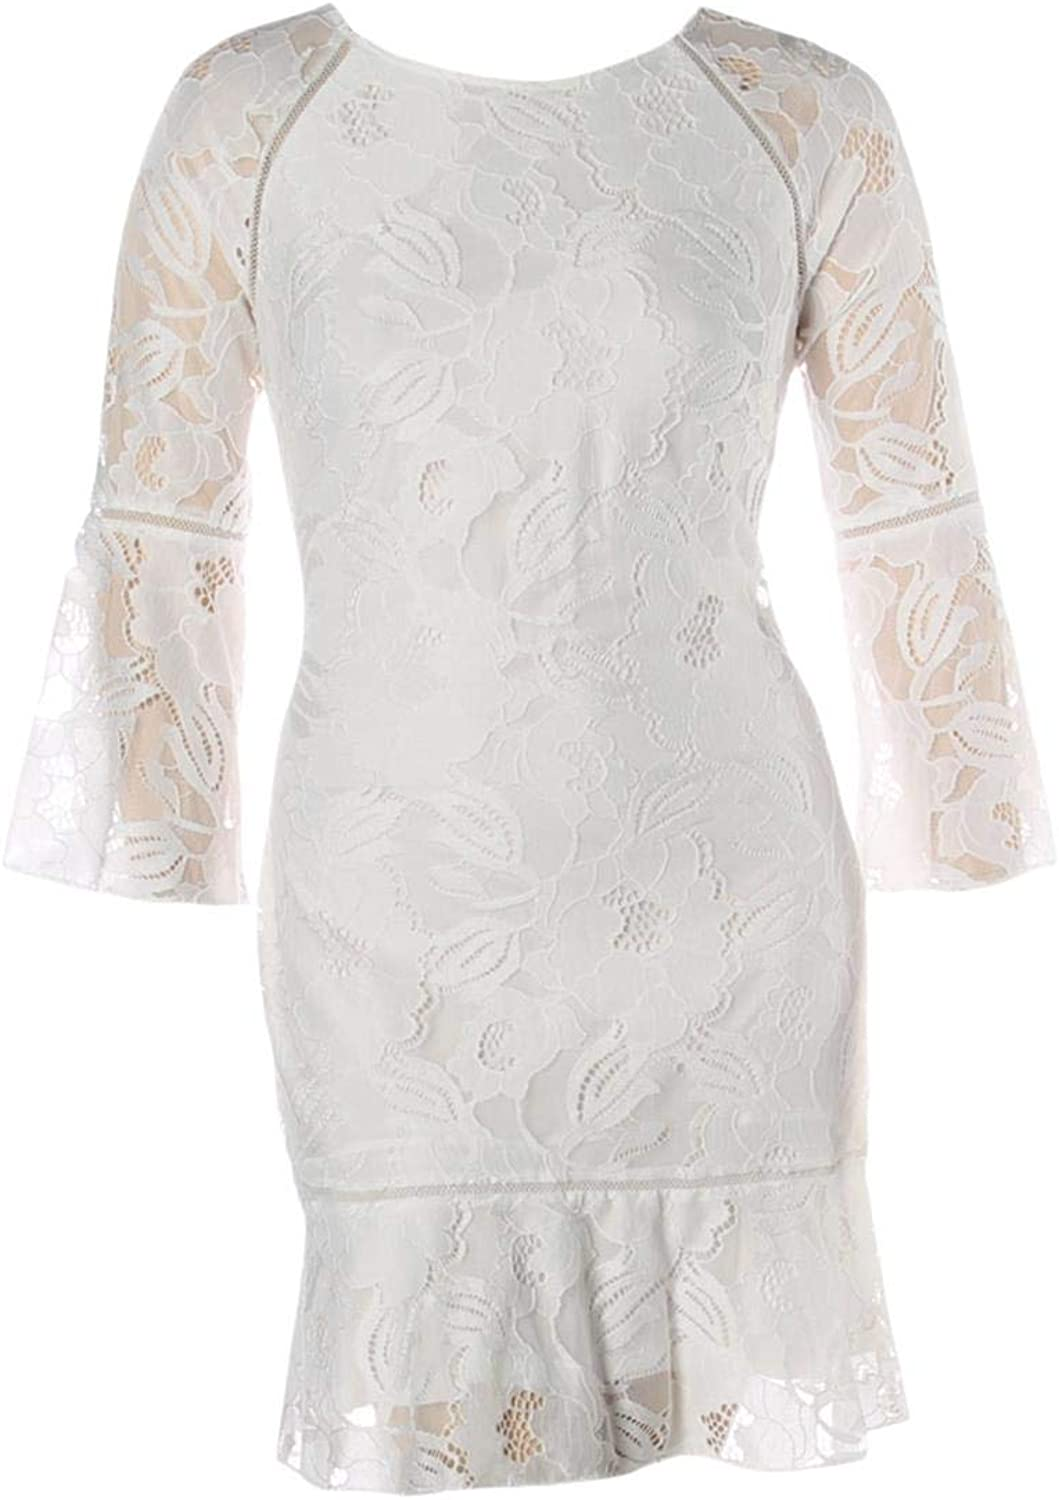 Kensie Womens Lace Overlay Bell Sleeves Party Dress